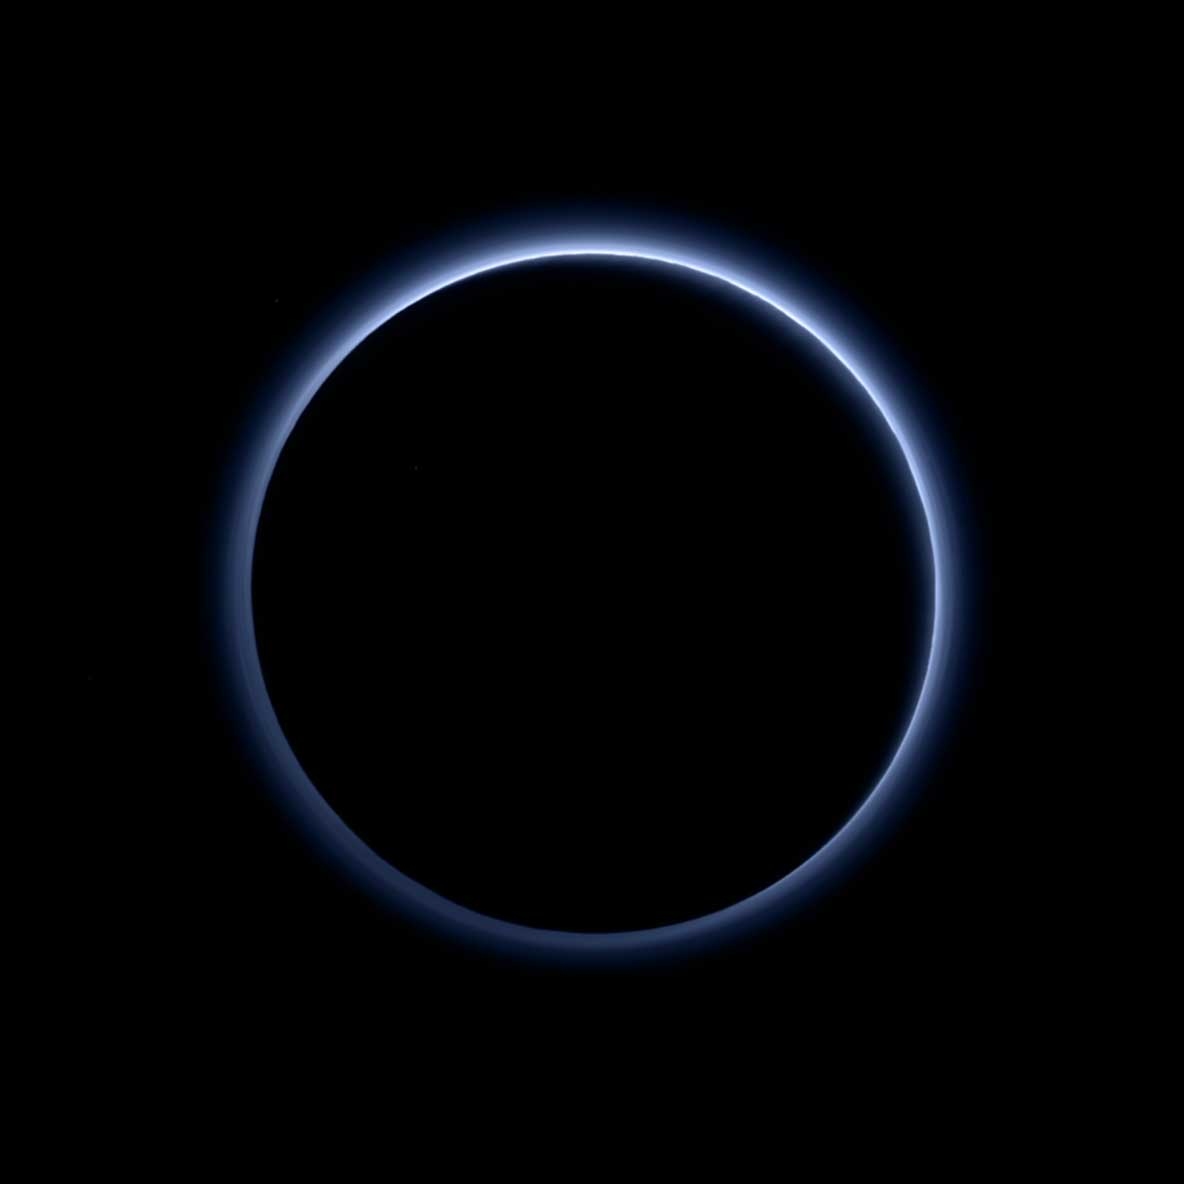 Pluto's haze layer shows its blue color in this picture taken by the New Horizons spacecraft on Oct. 8, 2015 after it passed the dwarf planet. The high-altitude haze is thought to be similar to that seen at Saturn's moon Titan. The source of both hazes likely involves sunlight-initiated chemical reactions of nitrogen and methane, leading to relatively small, soot-like particles called tholins.